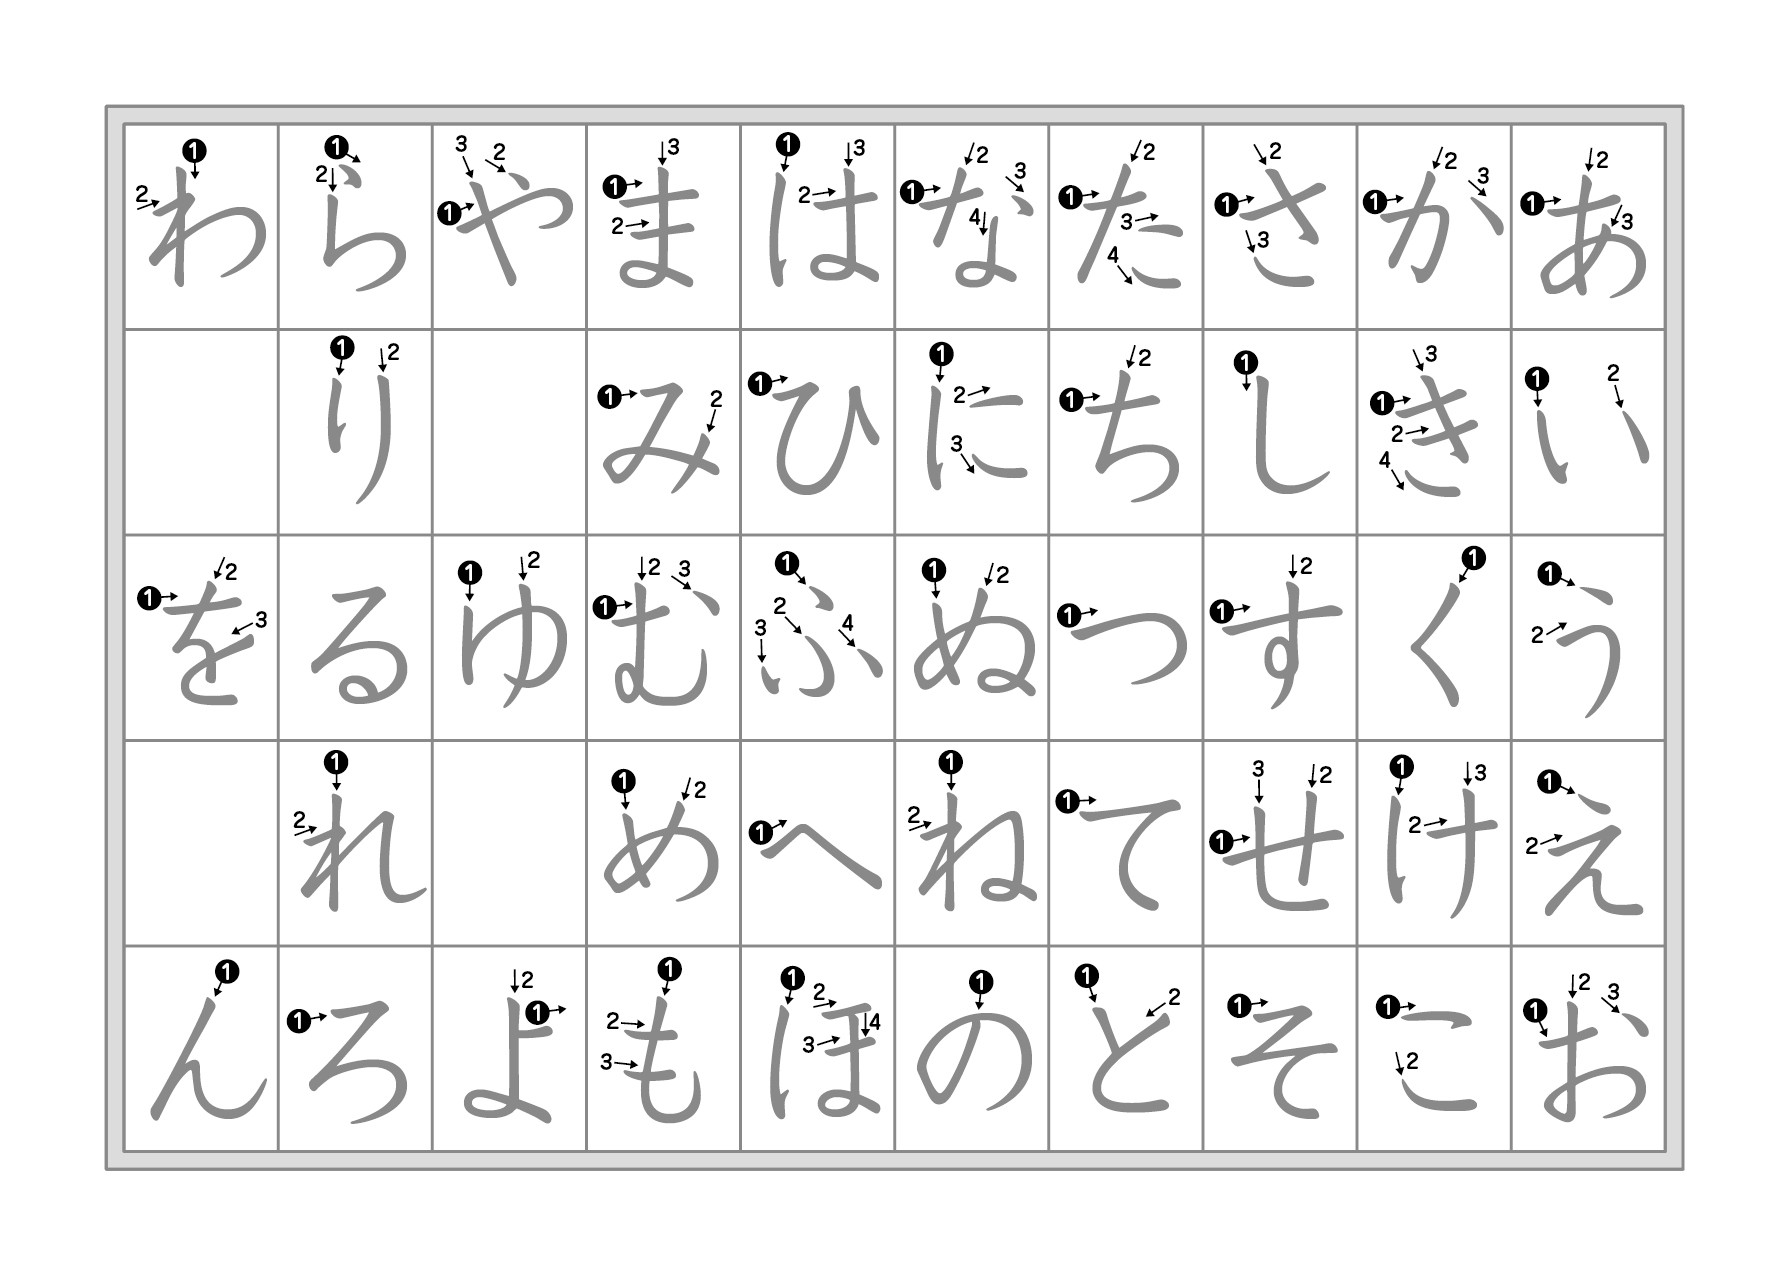 Printable Hiragana Worksheets 27 Downloadable Hiragana Charts